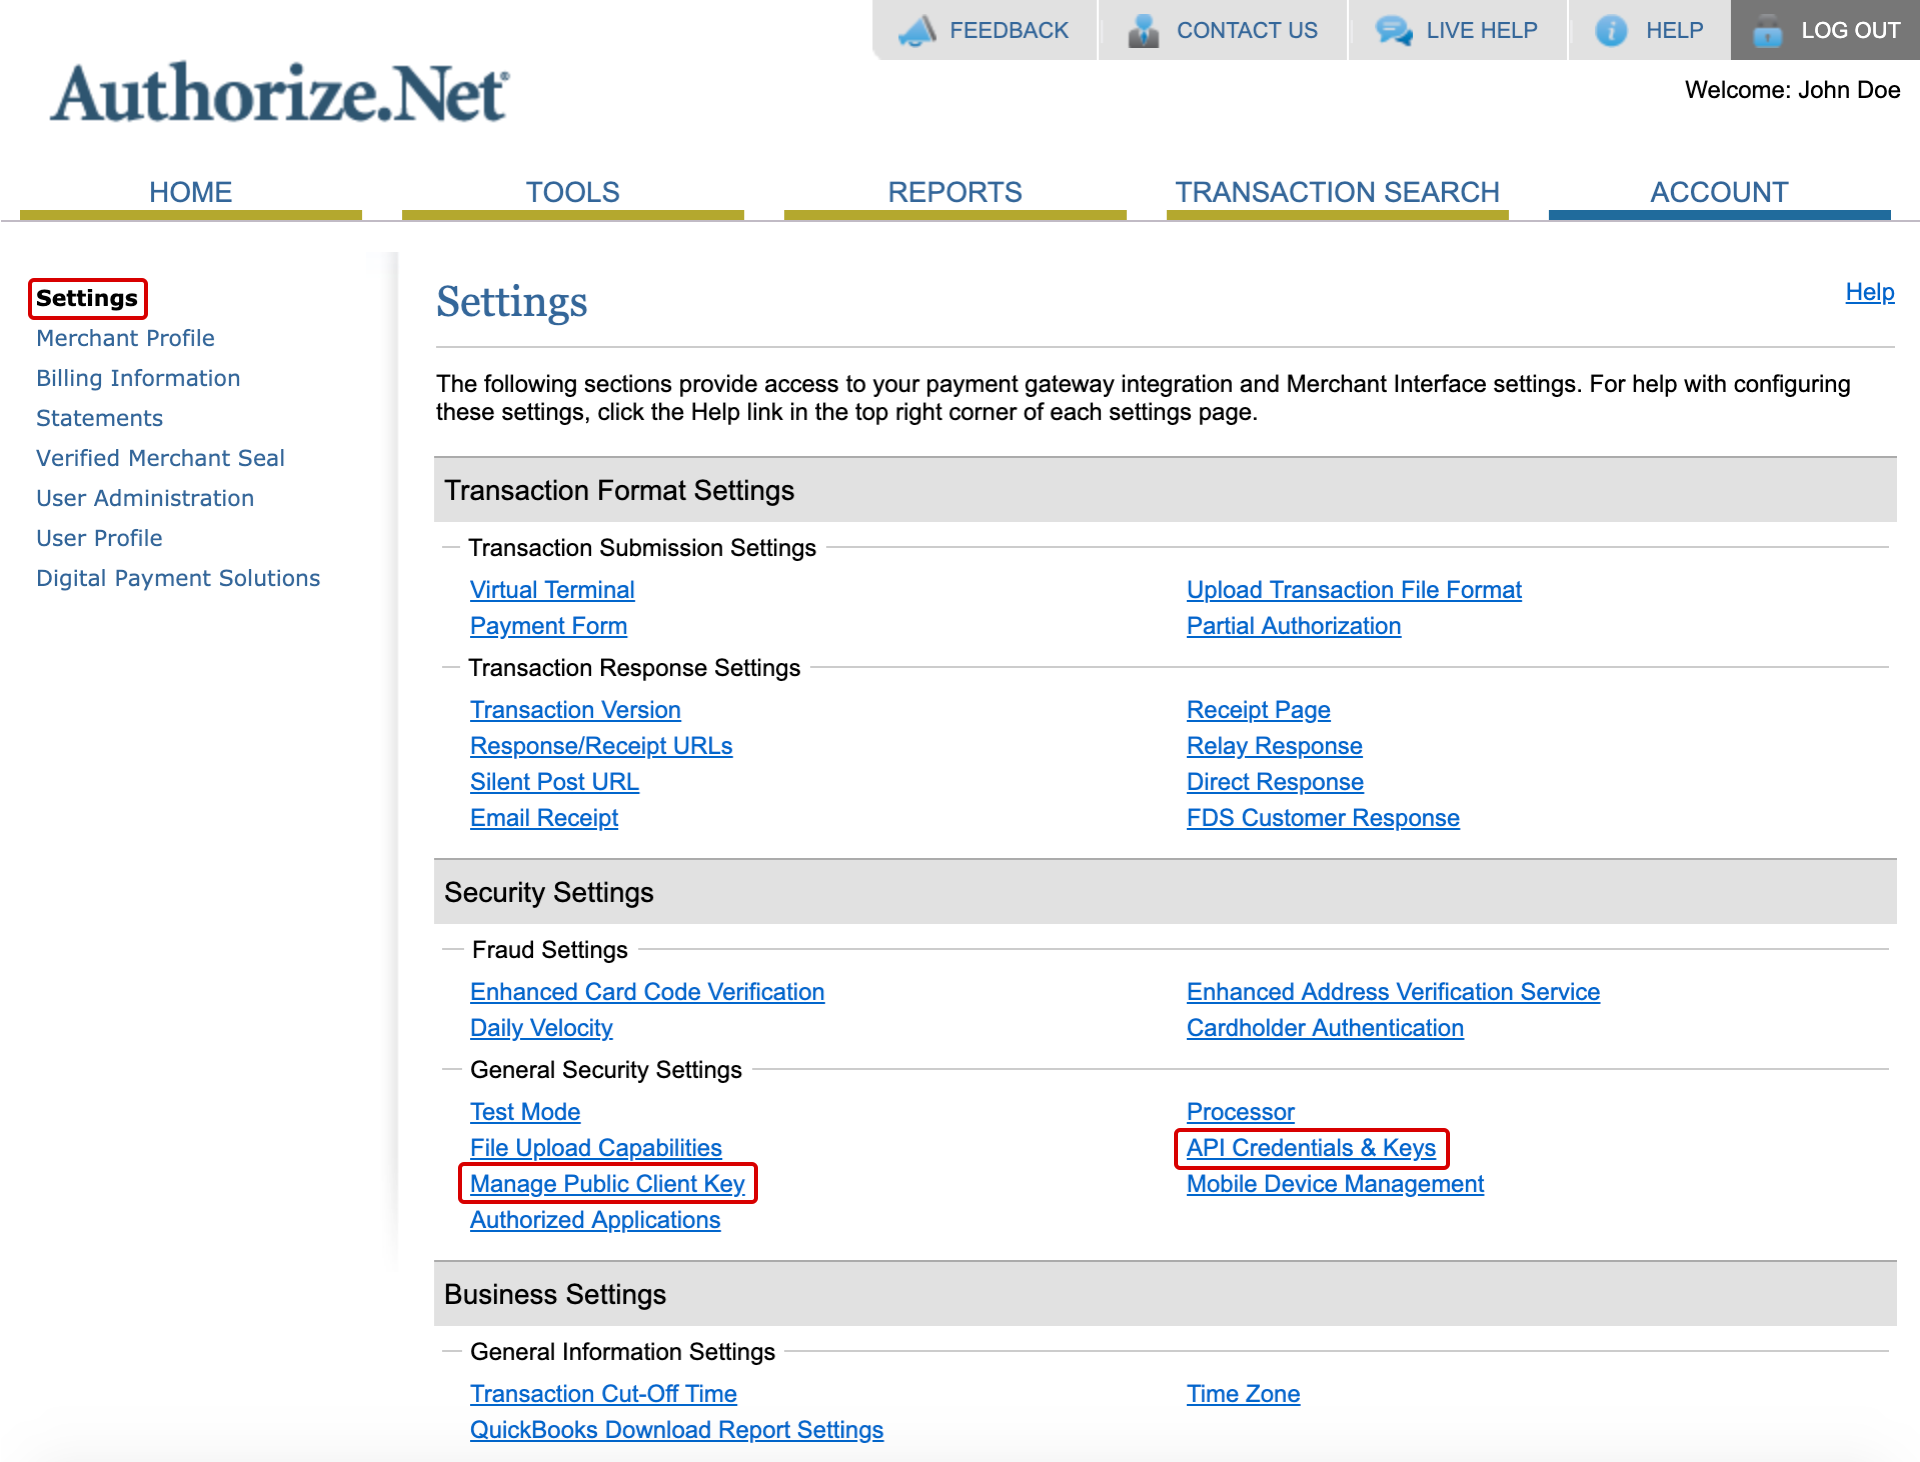 Authorize.Net Settings Section